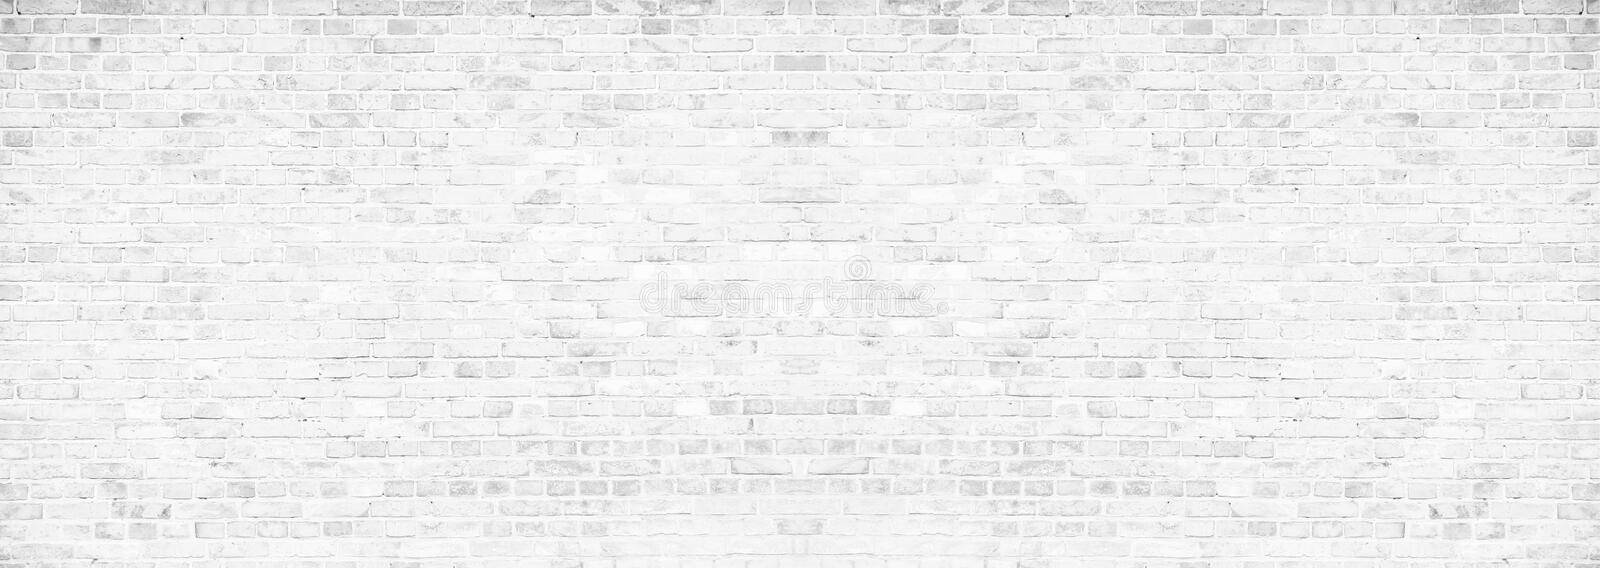 Simple grungy white brick wall with light gray shades pattern surface texture background in wide panorama banner format stock photo